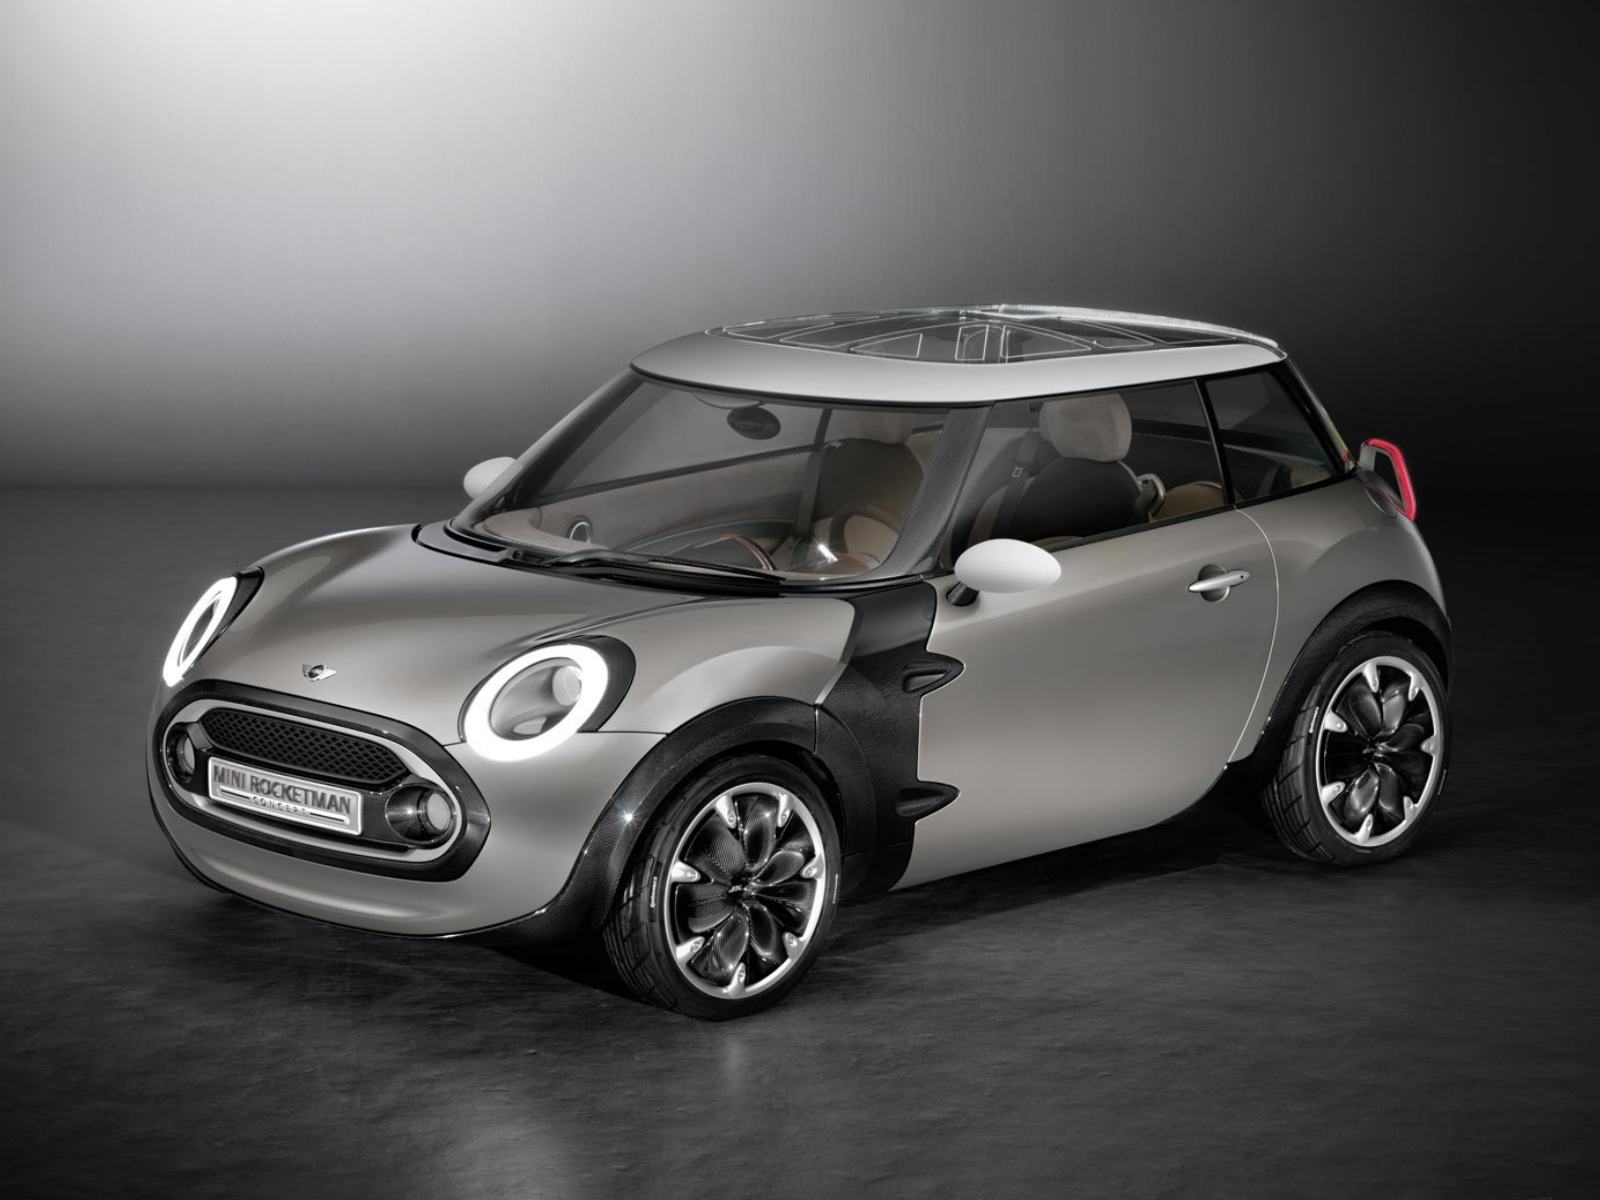 Обои НАВИНКИ 2011-MINI-Rocketman-Concept 1600x1200